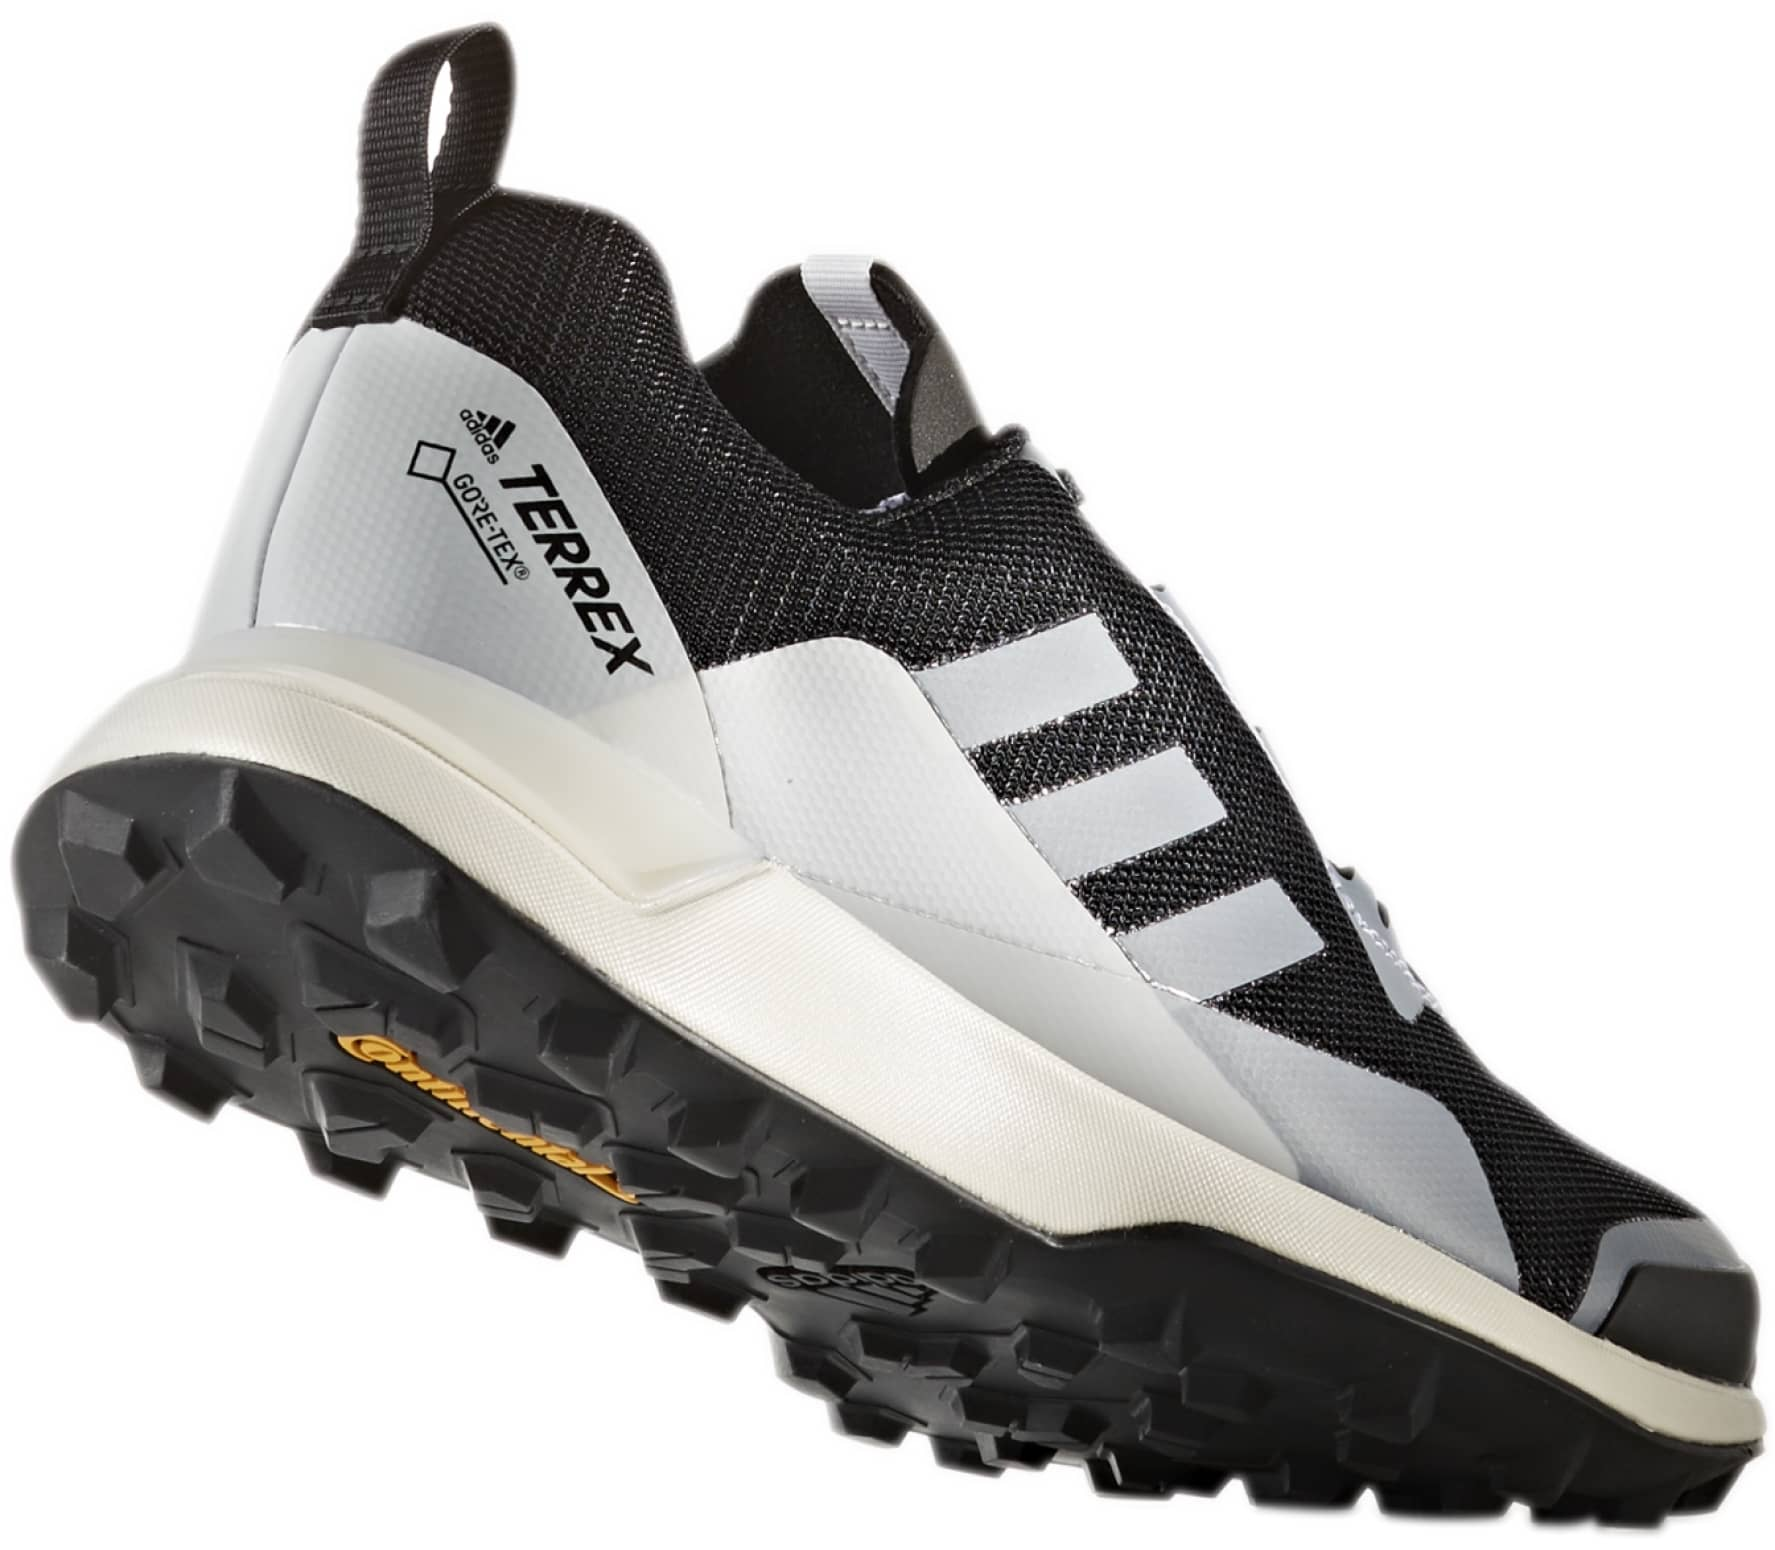 buy online 6efa1 413c1 Adidas - Terrex CMTK GTX women s trail running shoes (black grey)